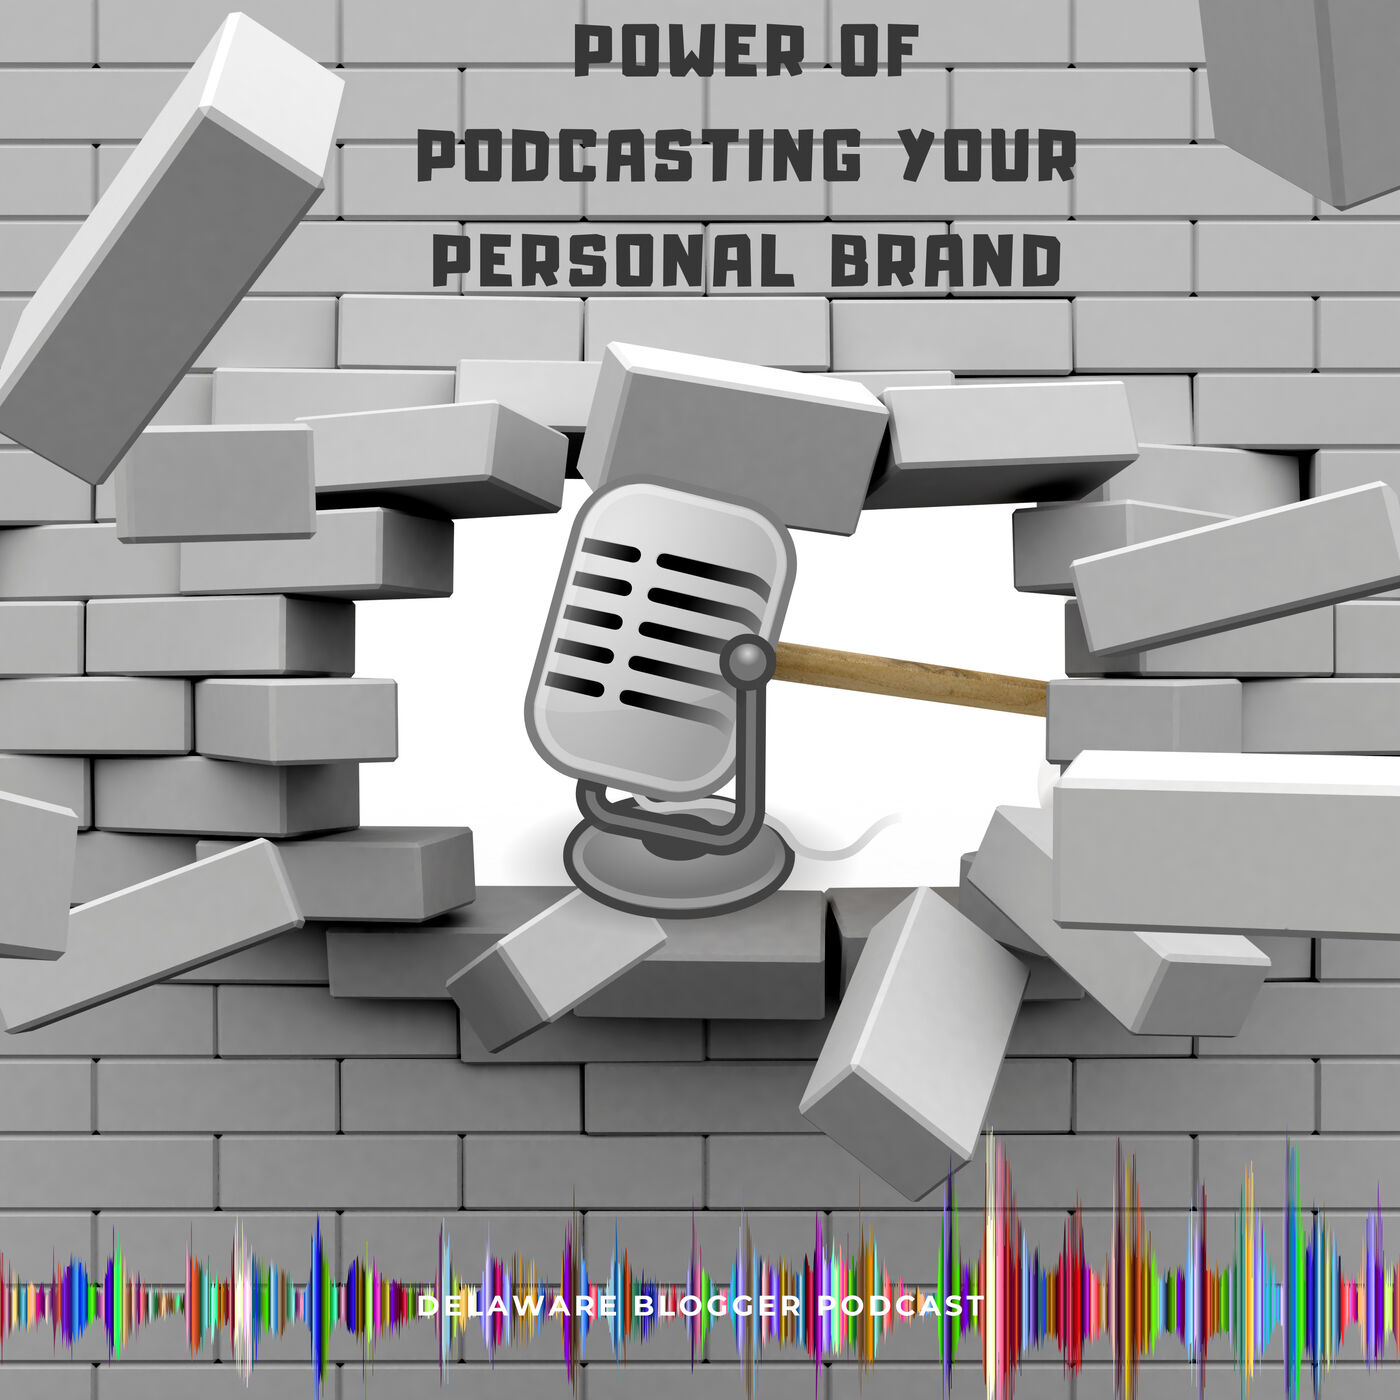 Power of Podcasting Your Personal Brand